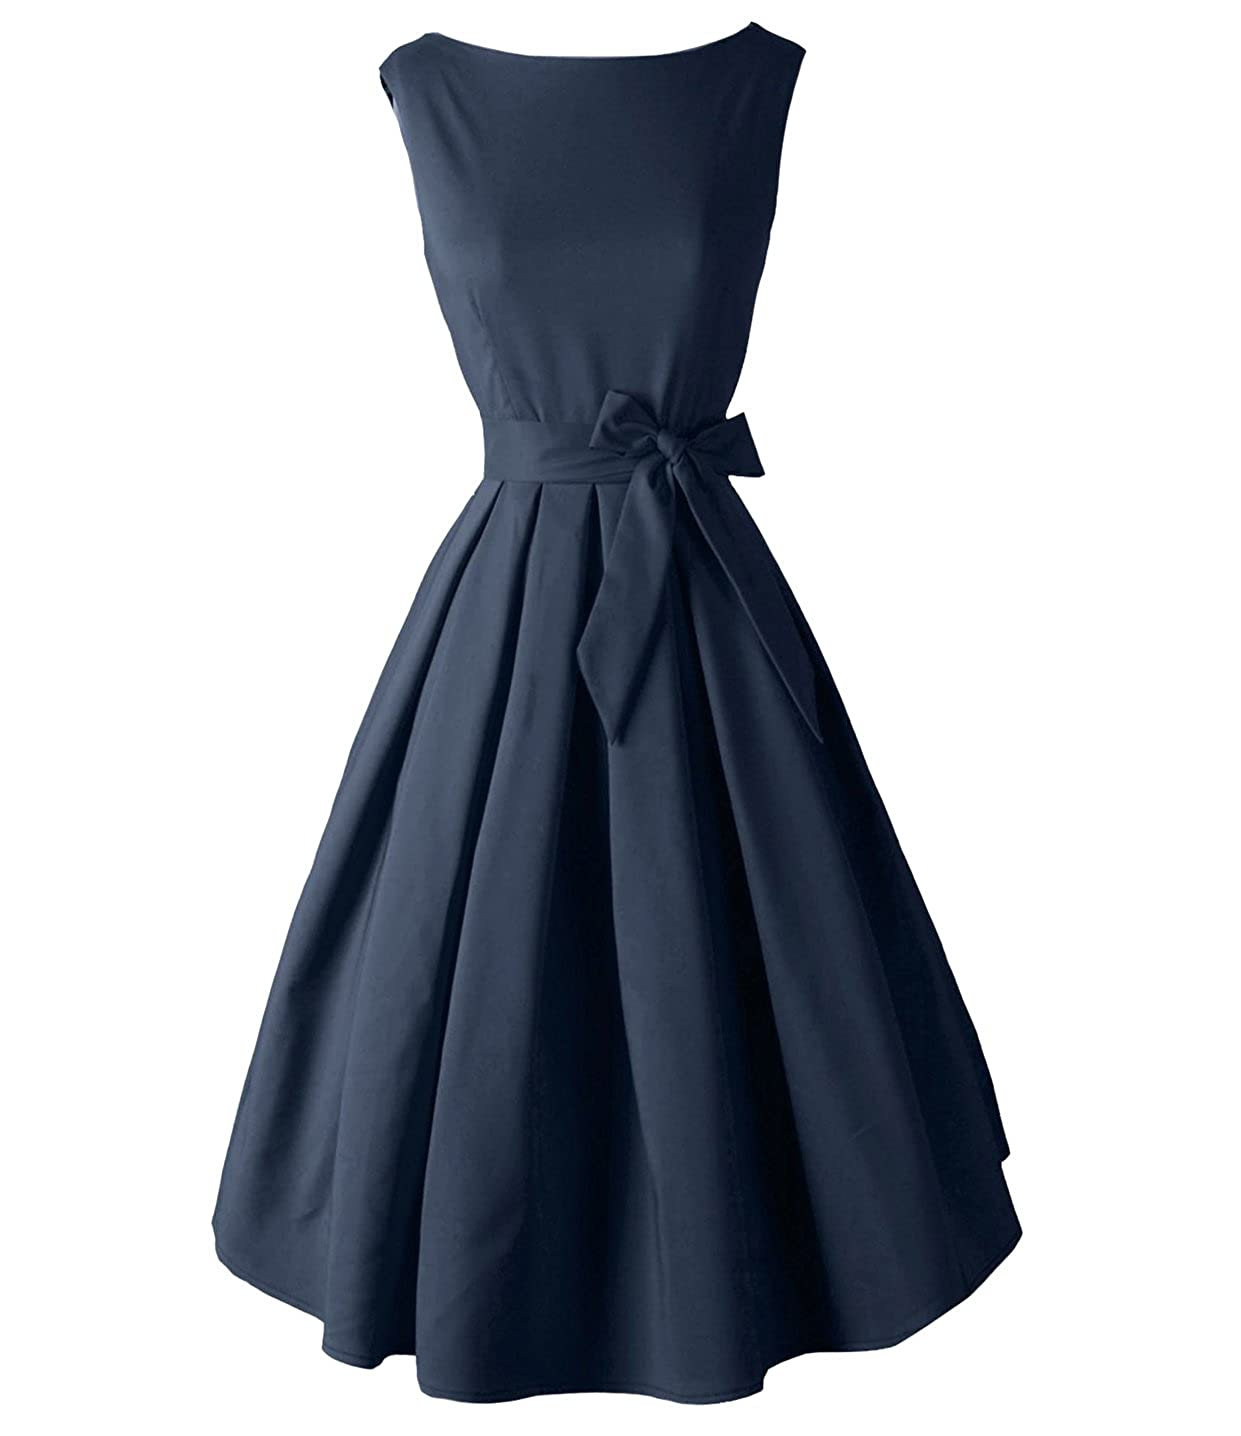 Dark bluee Tecrio Vintage Audrey Hepburn 1950's Boat Neck Solid Cocktail Party Swing Dress